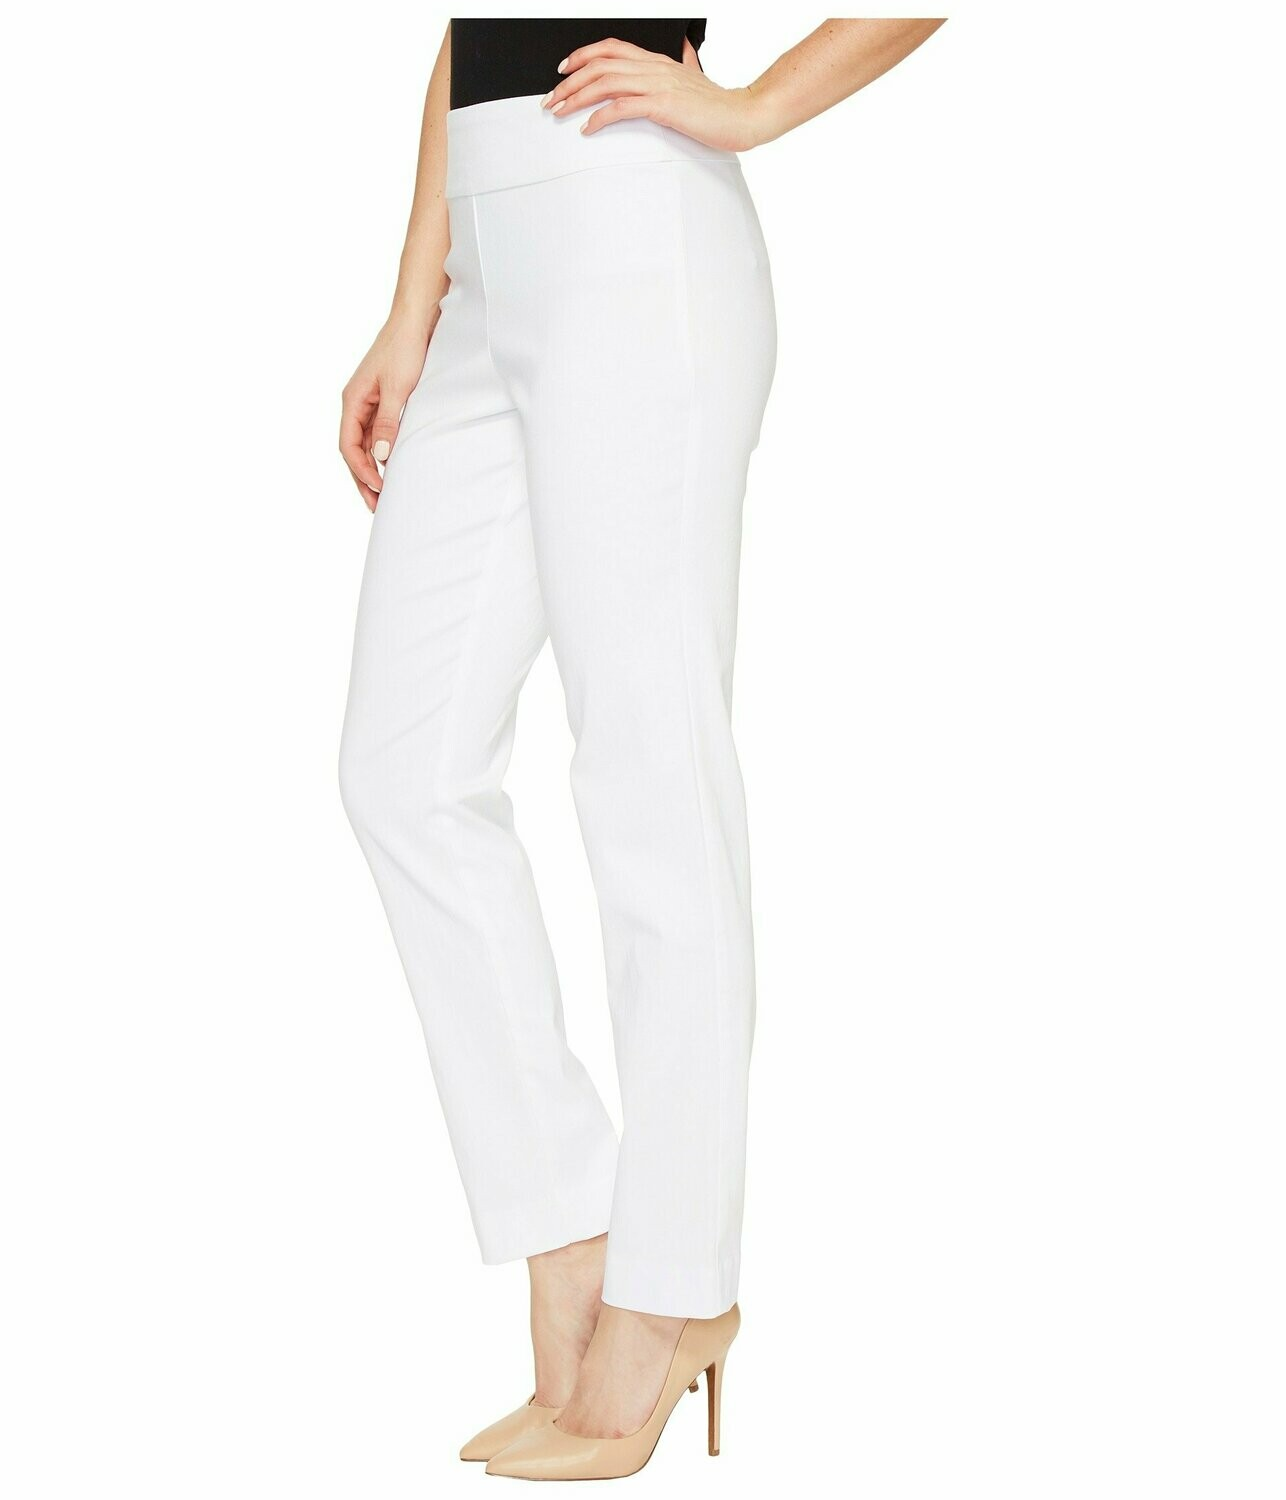 "P507 28"" Ankle Pant White"